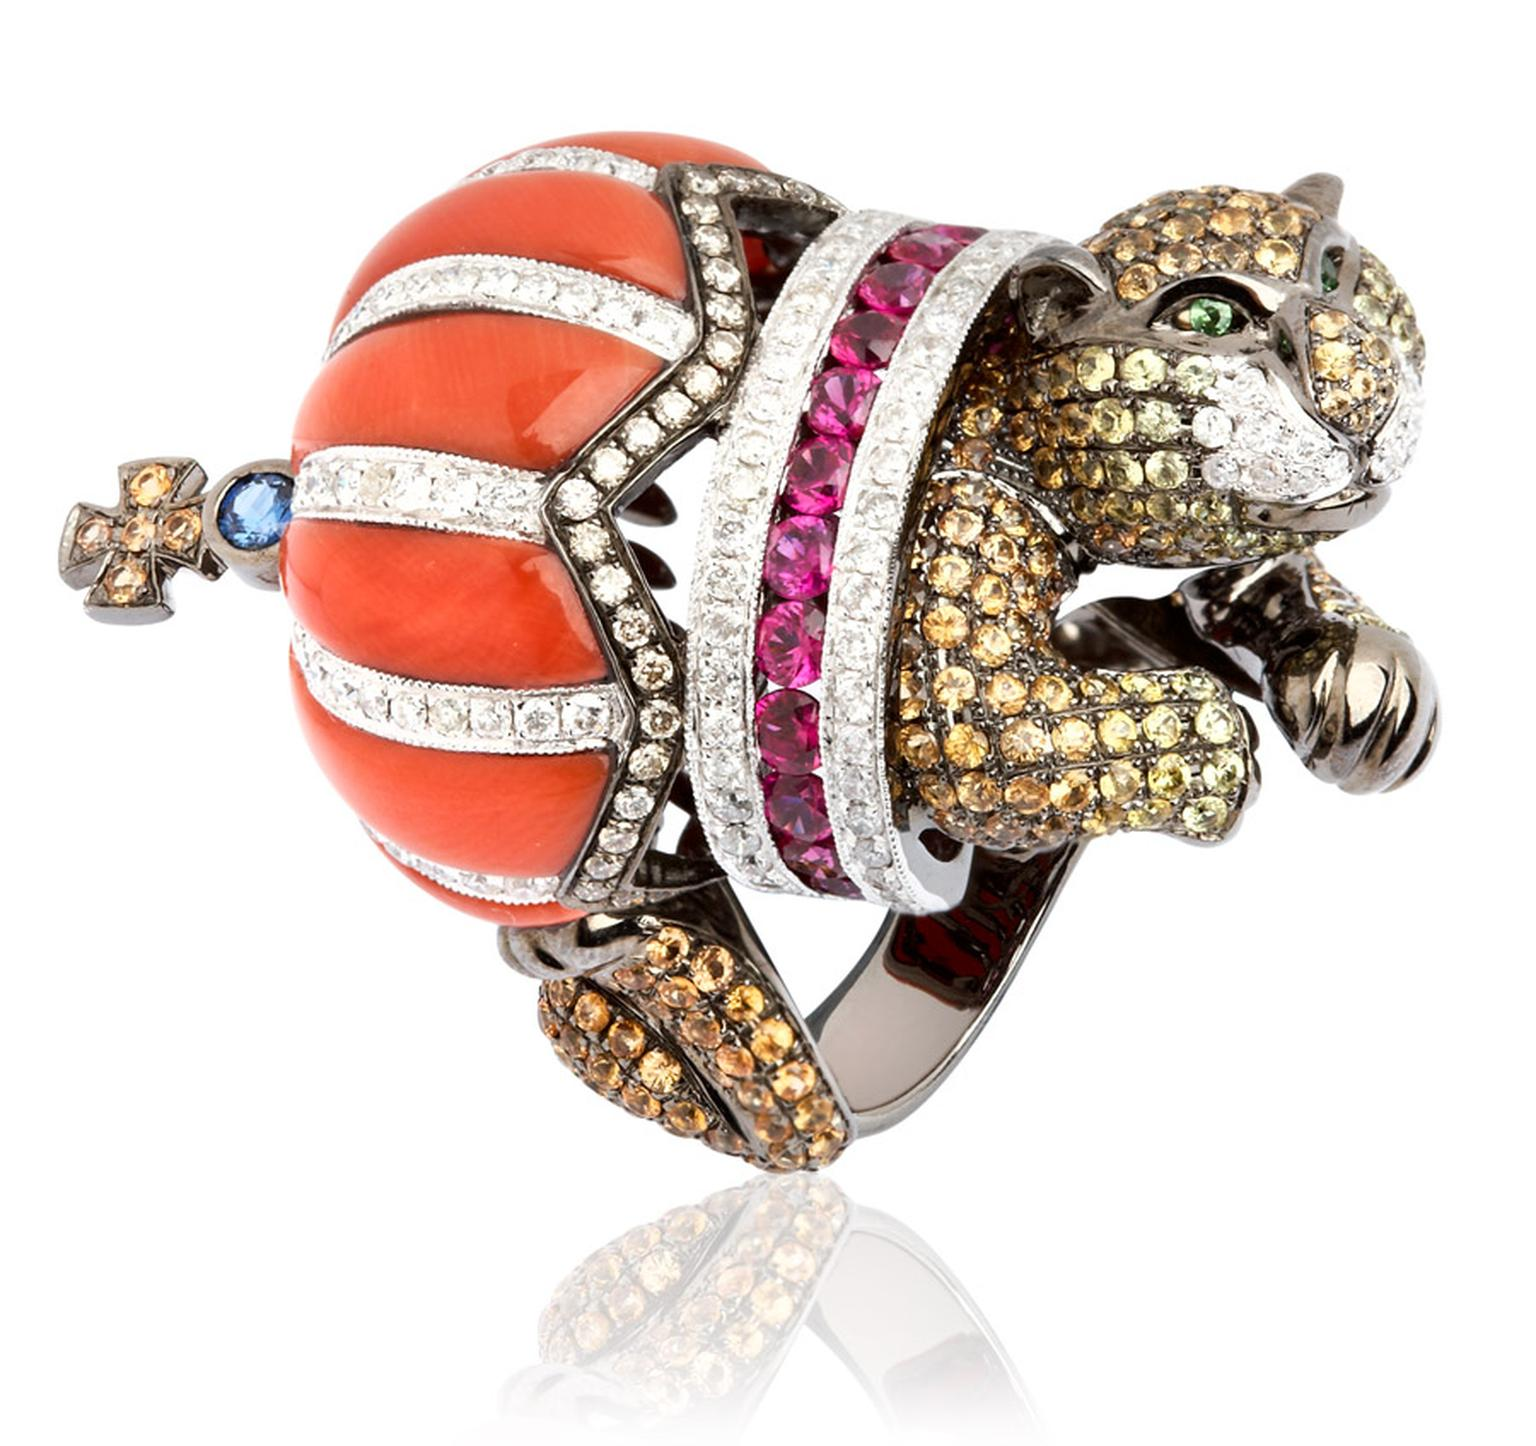 Wendy-Yue-Fantasie-Jubilee-18ct-yellow-gold,-diamond,-sapphire,-garnet-and-ruby-Lion-ring-by-Wendy-Yue-for-Annoushka_01.jpg